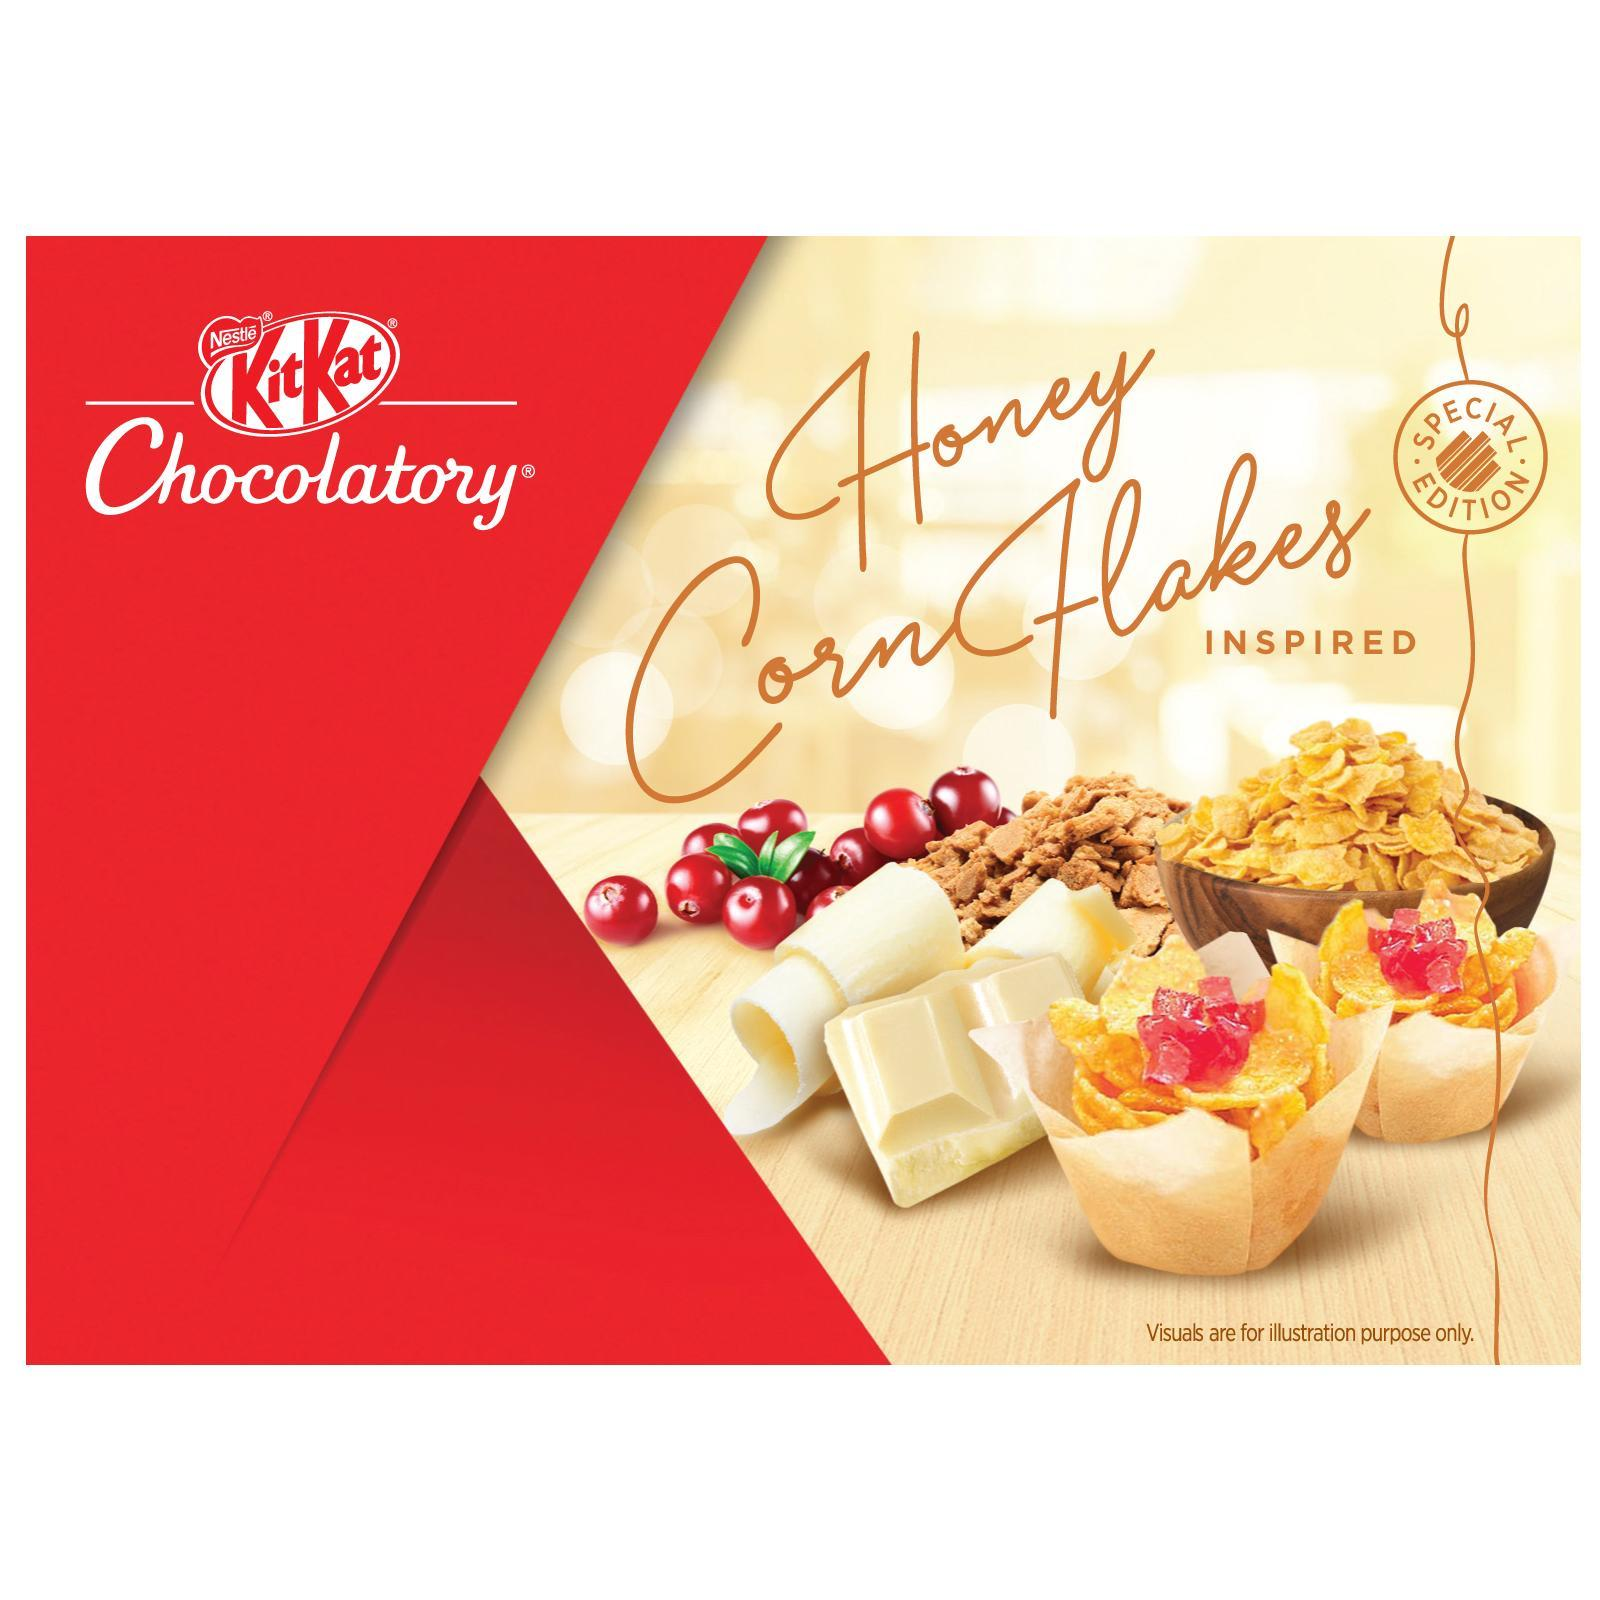 Nestle Kit Kat Chocolatory Corn Flakes And Cranberry (Special Edition)